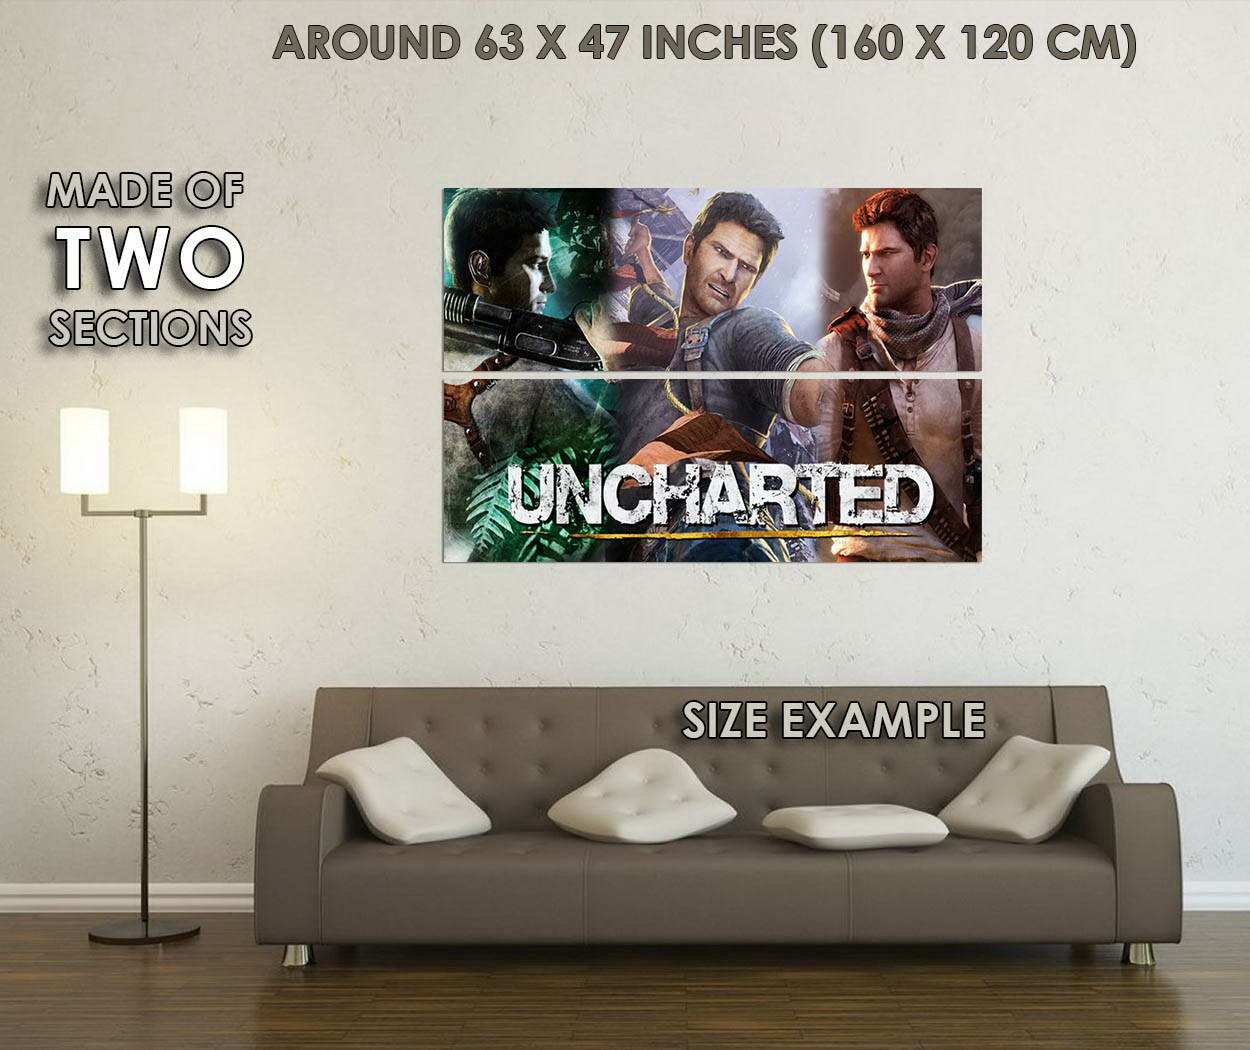 10092-Uncharted-4-A-Thiefs-End-Hot-Game-Art-LAMINATED-POSTER-CA thumbnail 6